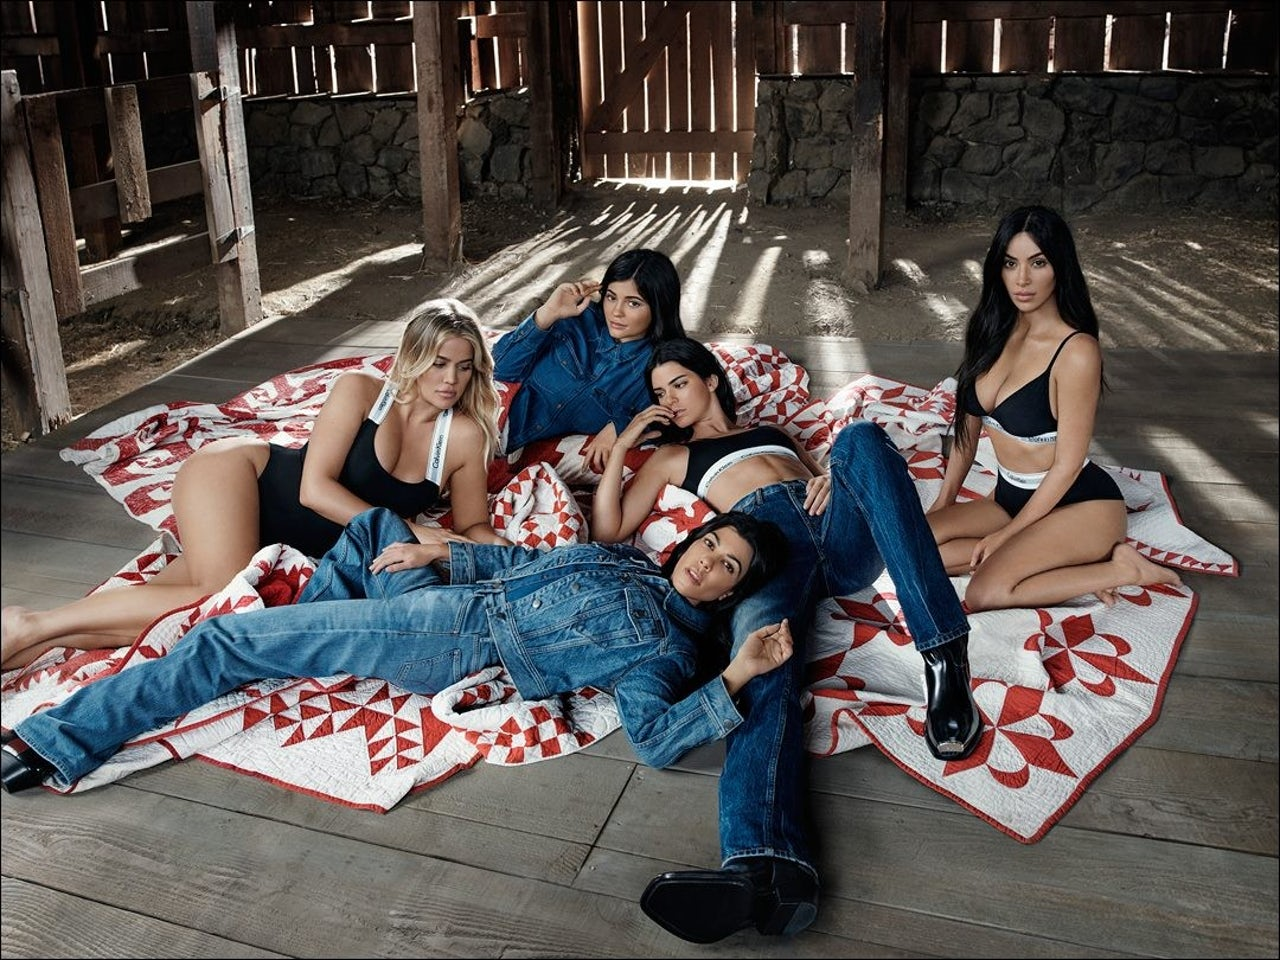 The Kardashian-Jenners in a totally normal meeting spot for Calvin Klein's #MyCalvin's campaign.